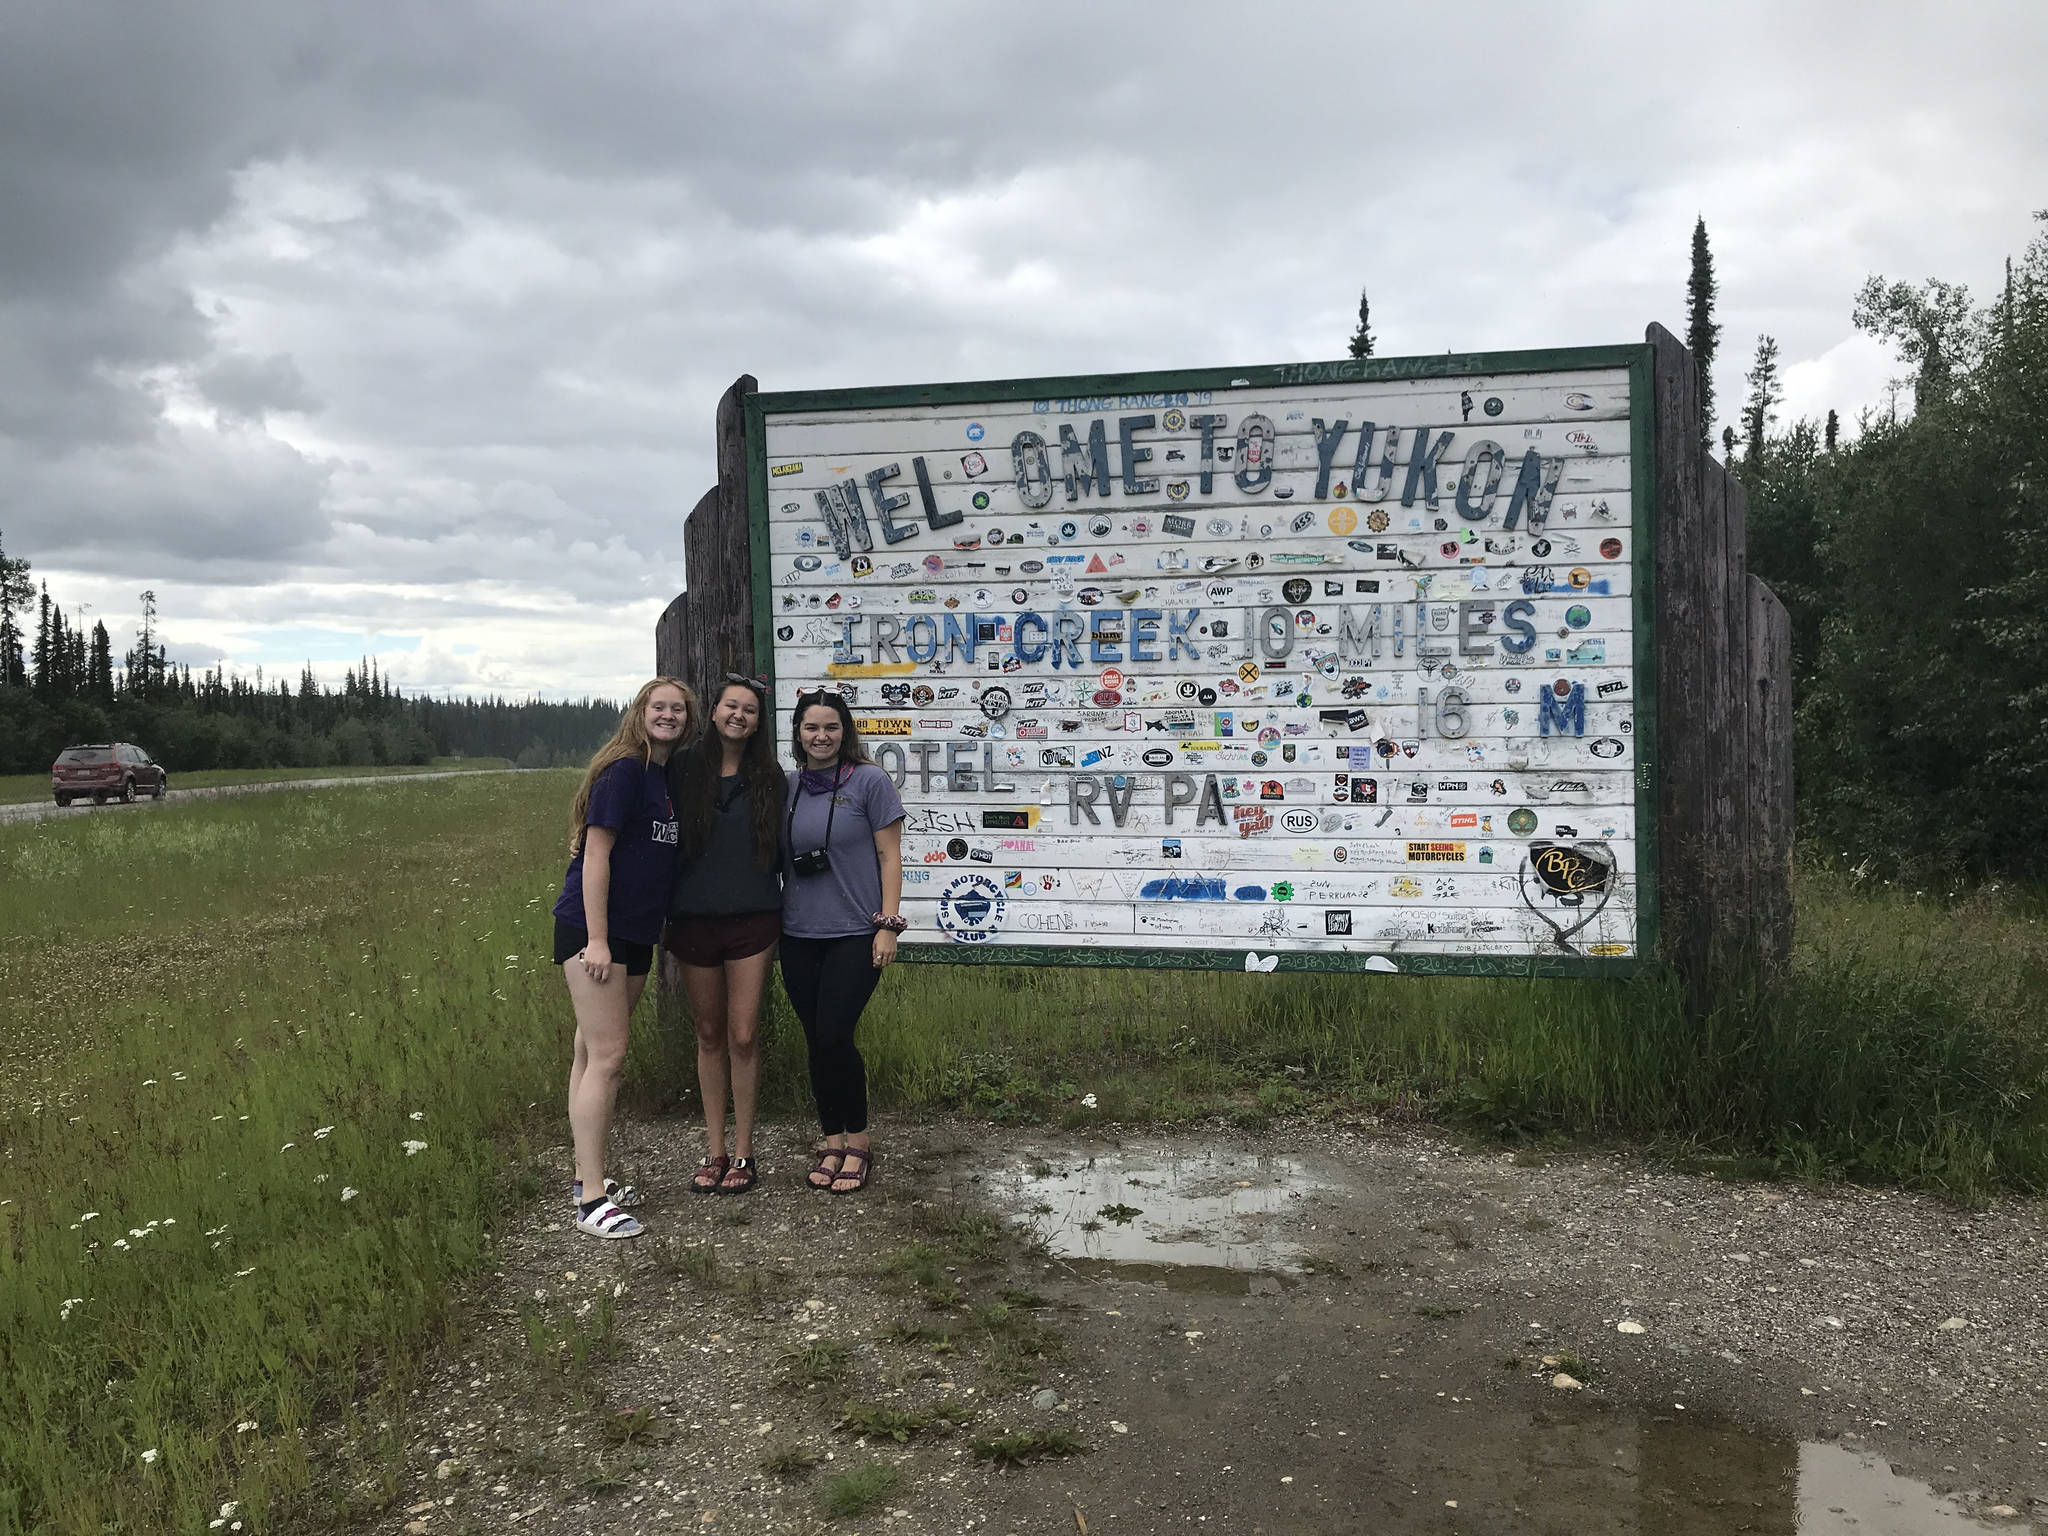 From left to right: Camille Botello, Emma Schoonover and Grace Thompson-Johnston stand in front of a sign welcoming them to the Yukon territory in Canada as they make their way up the Alaska Highway on July 16, 2020. (Photo provided)